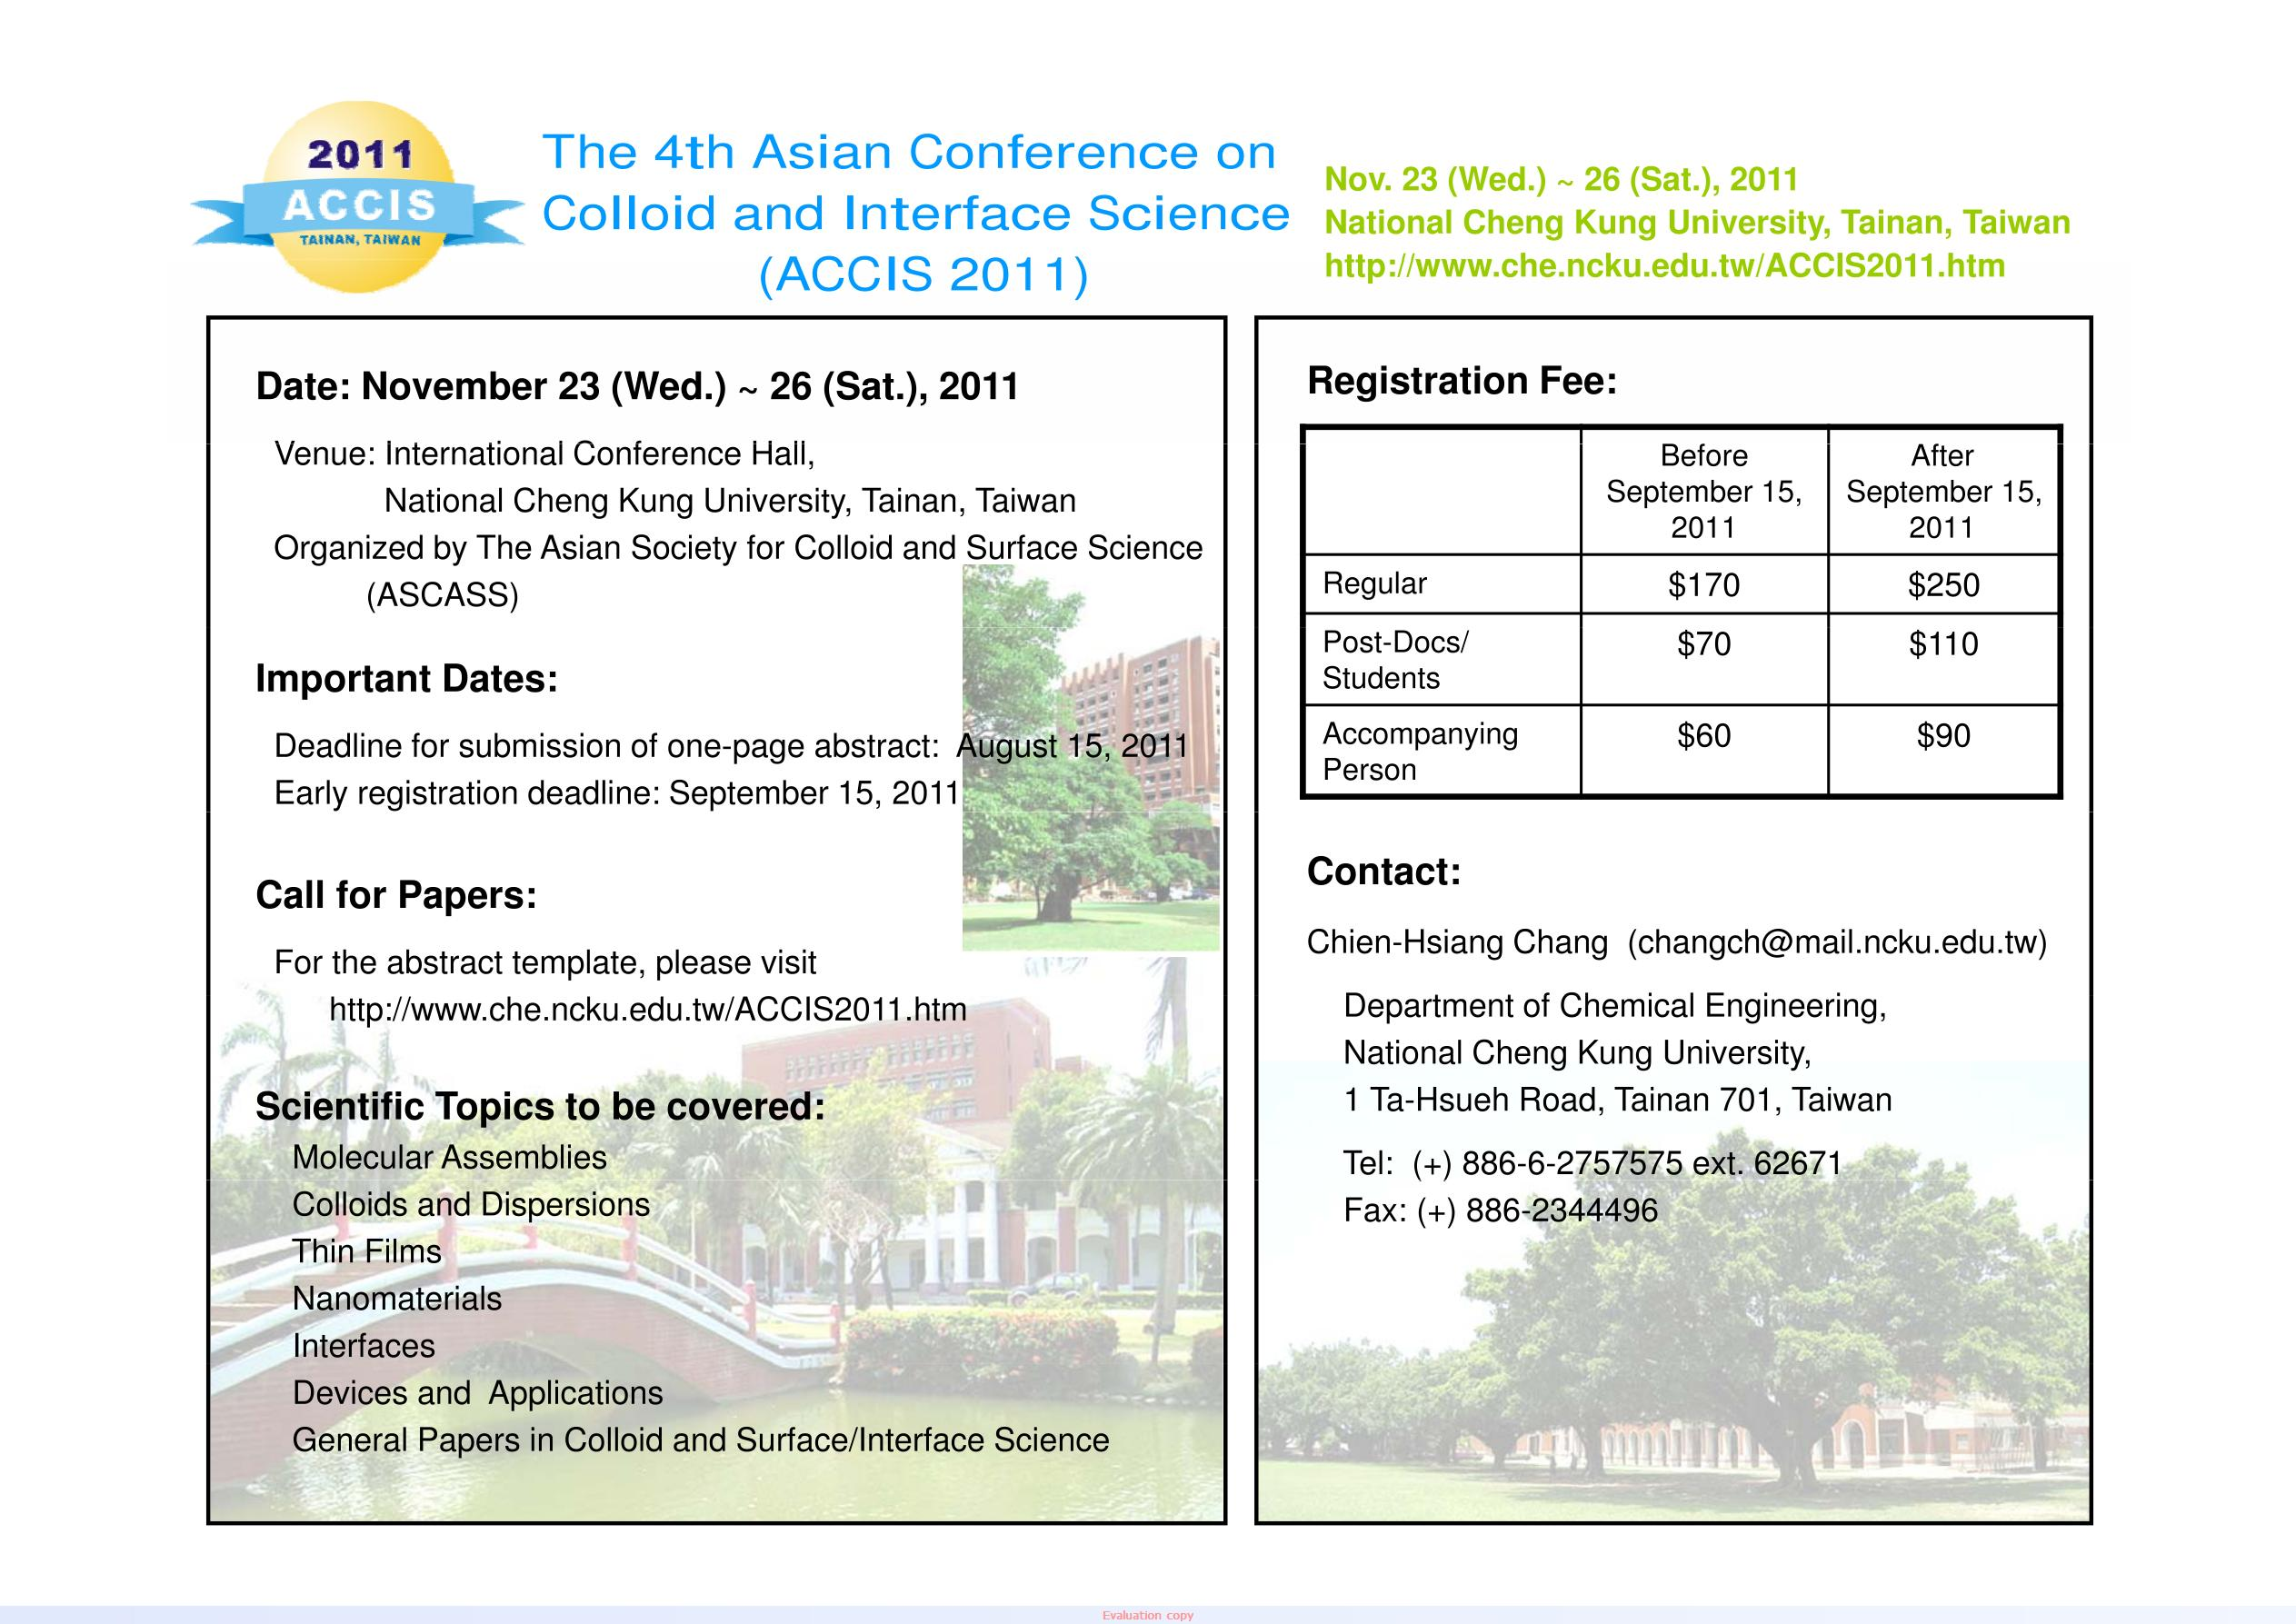 ACCIS2011-flyer - page1.jpg